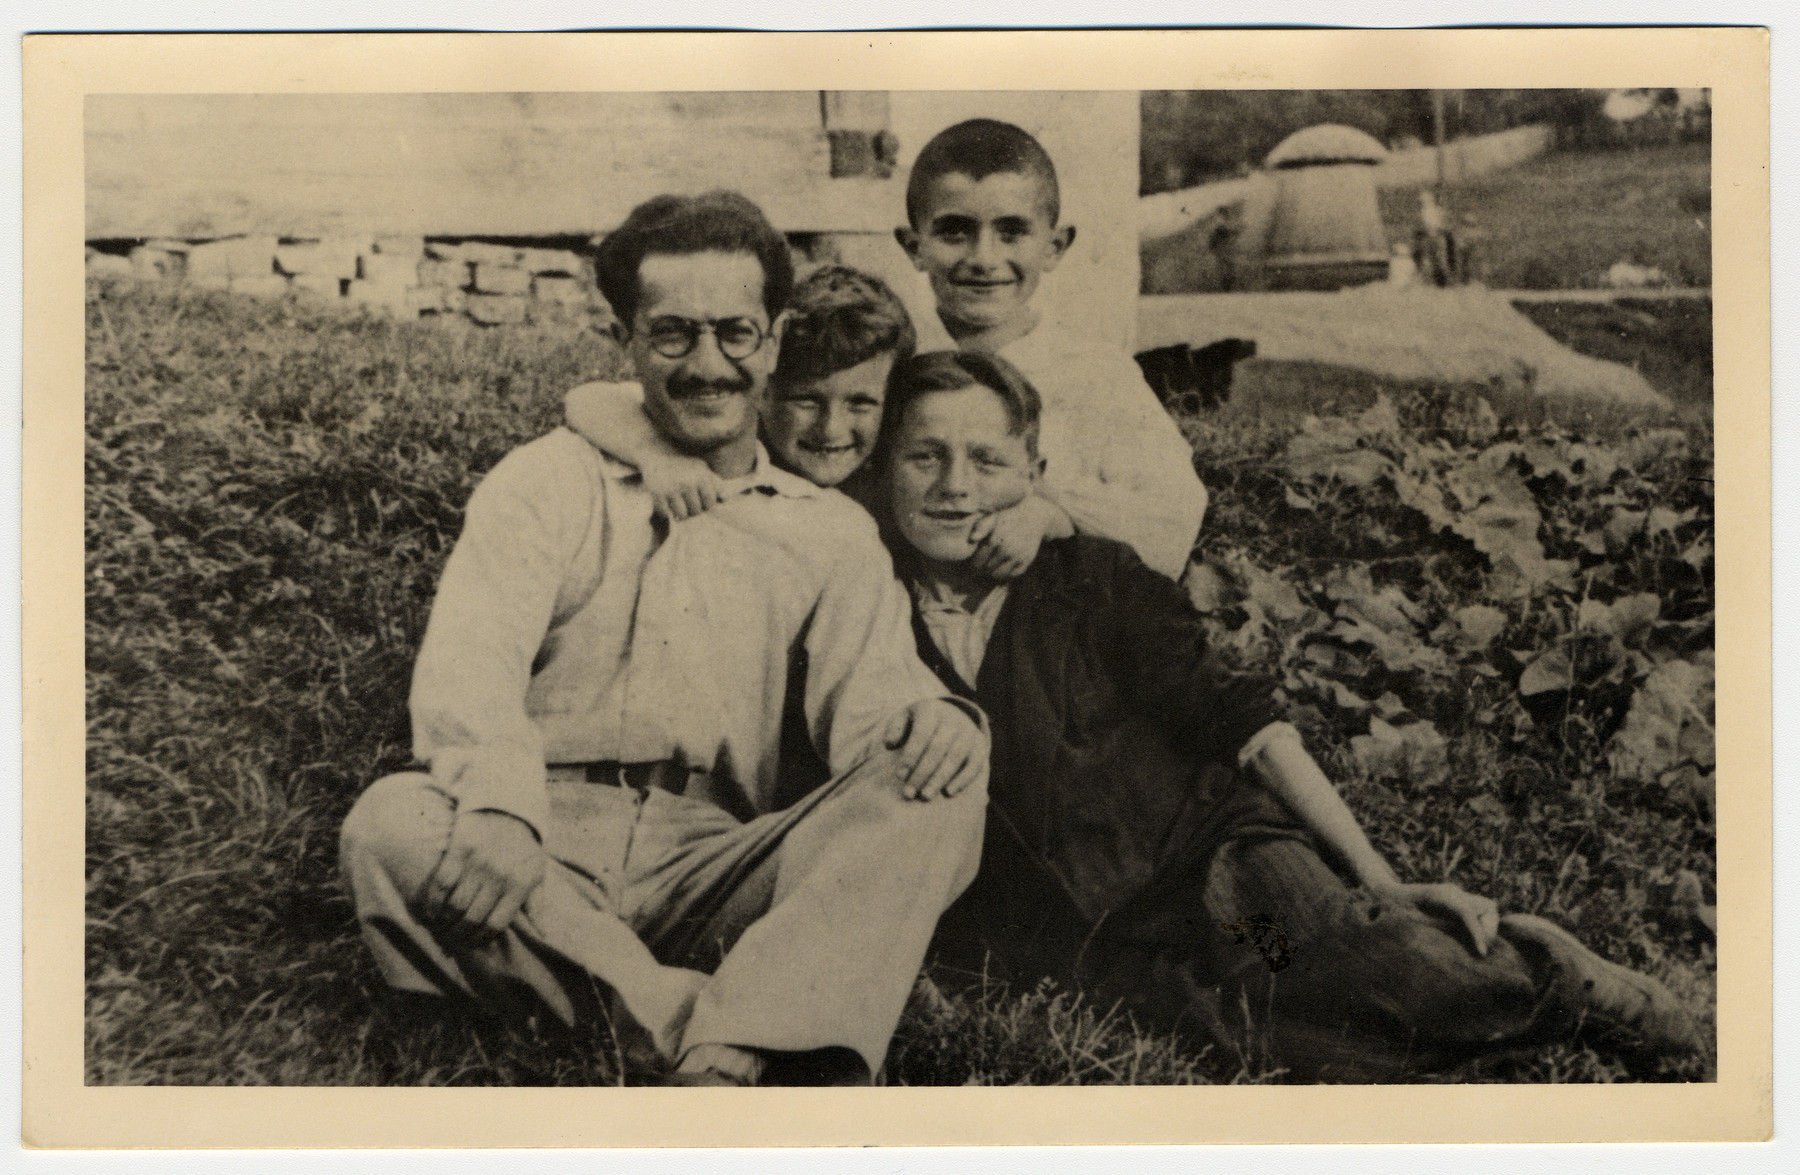 Close-up portrait of a man and three boys sitting in a field in Drohobycz.    Paul Lustig is pictured in the back.  [With him may be his uncle and cousins.]